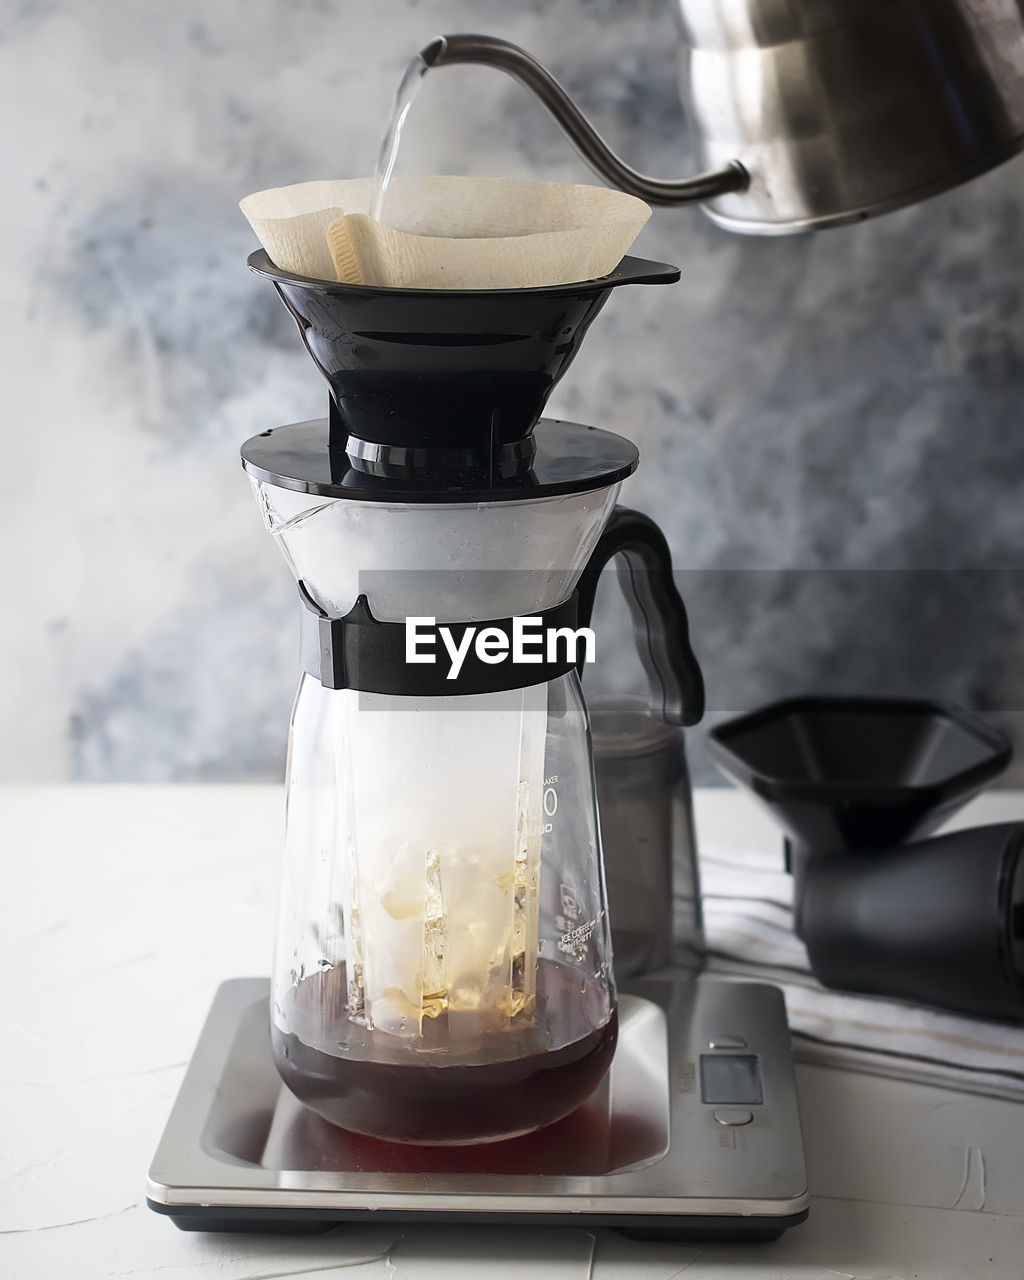 food and drink, drink, refreshment, household equipment, coffee, indoors, appliance, kitchen utensil, close-up, preparation, no people, table, coffee - drink, kitchen, still life, glass - material, coffee maker, food, freshness, glass, coffee pot